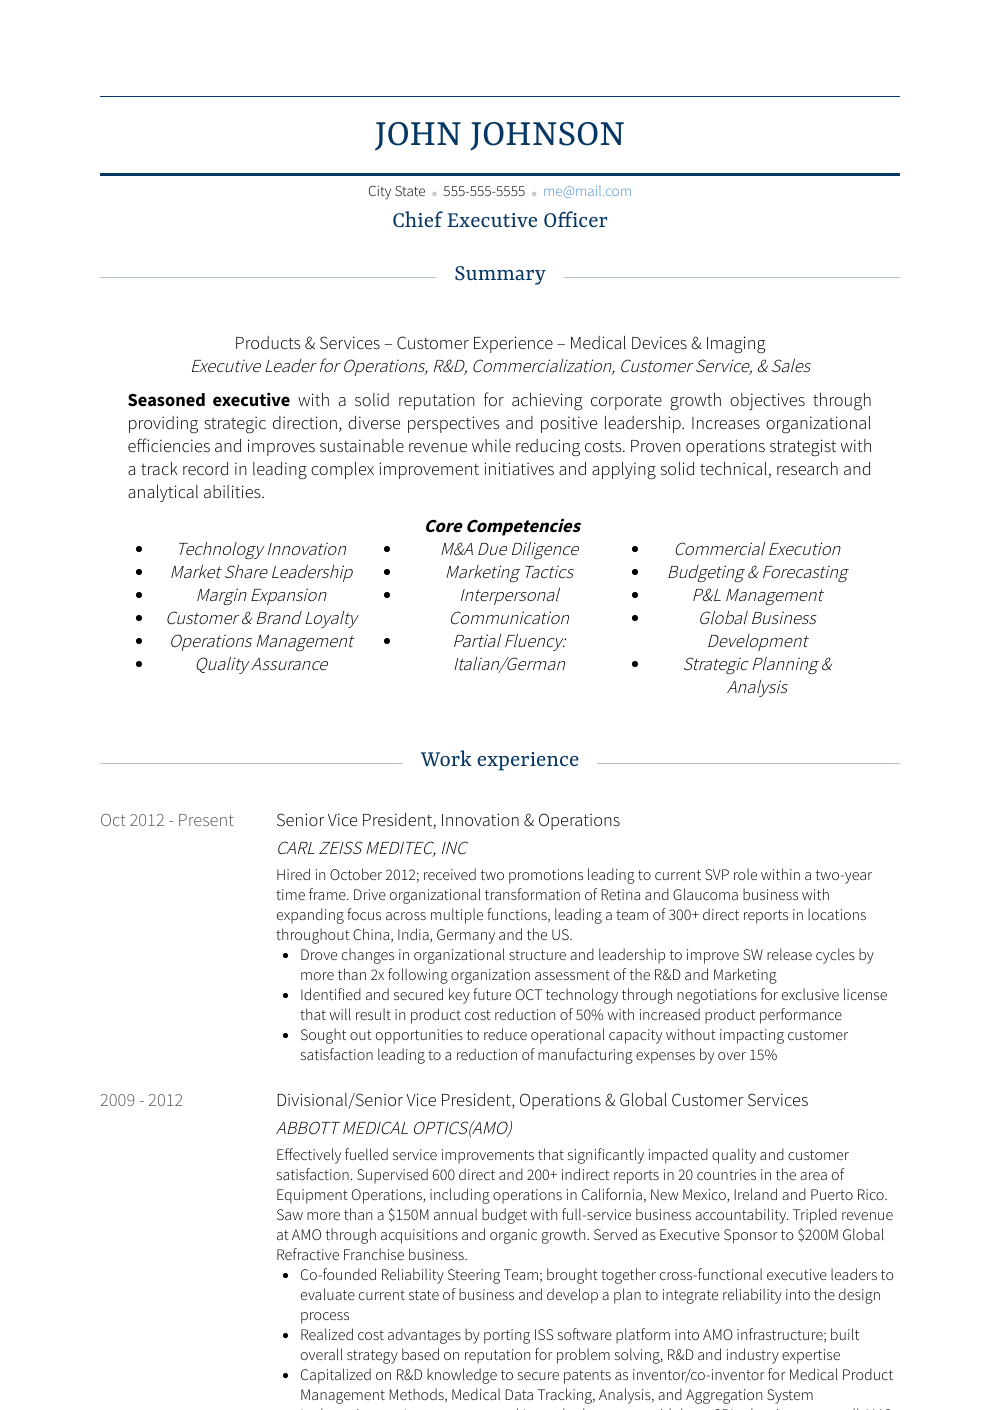 Chief Executive Officer Resume Sample and Template